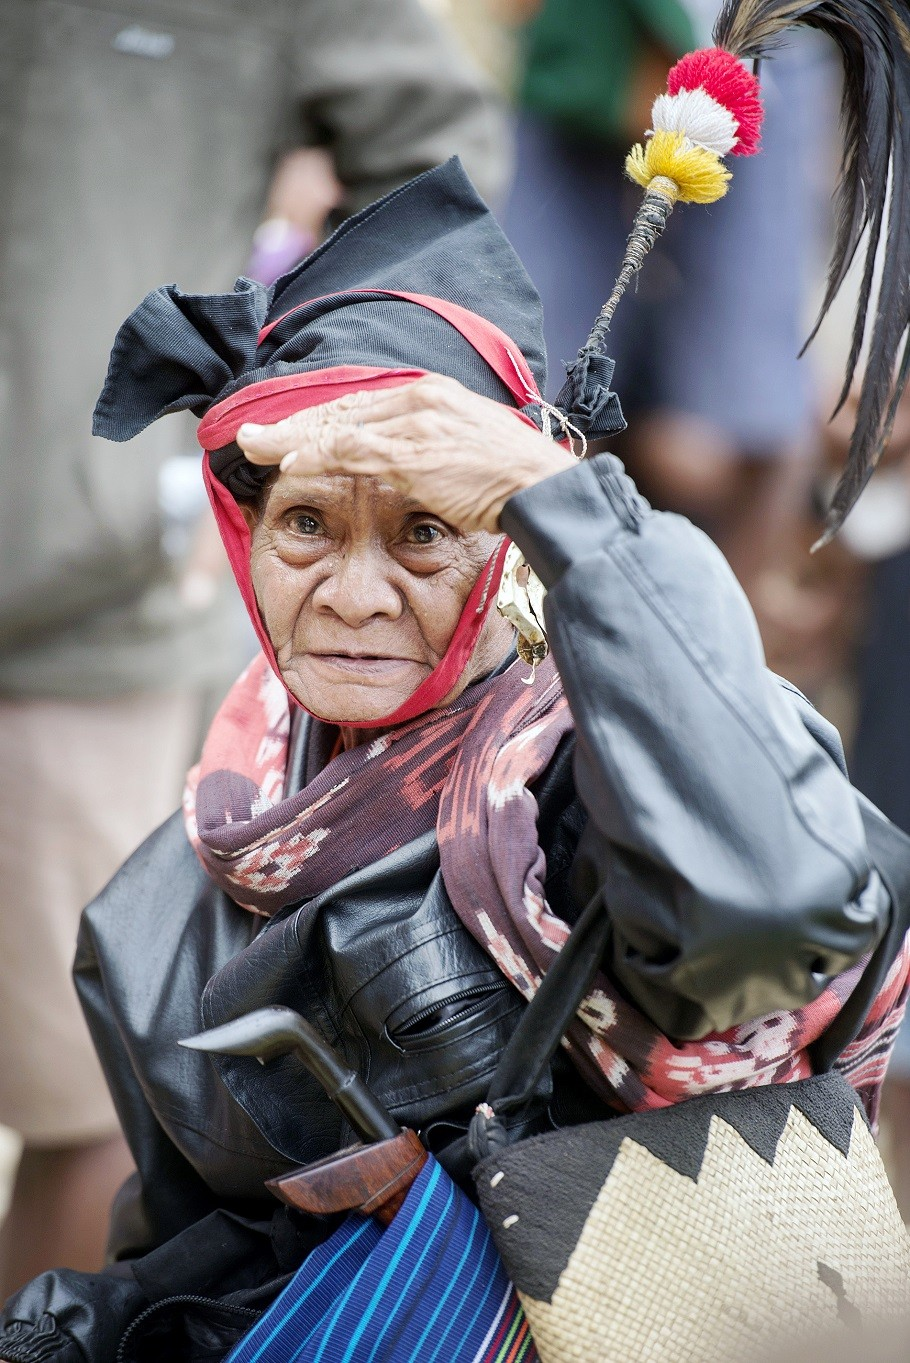 Where is it?: An old woman comes prepared when searching for nyale worms at Wanokaka Beach in Sumba.